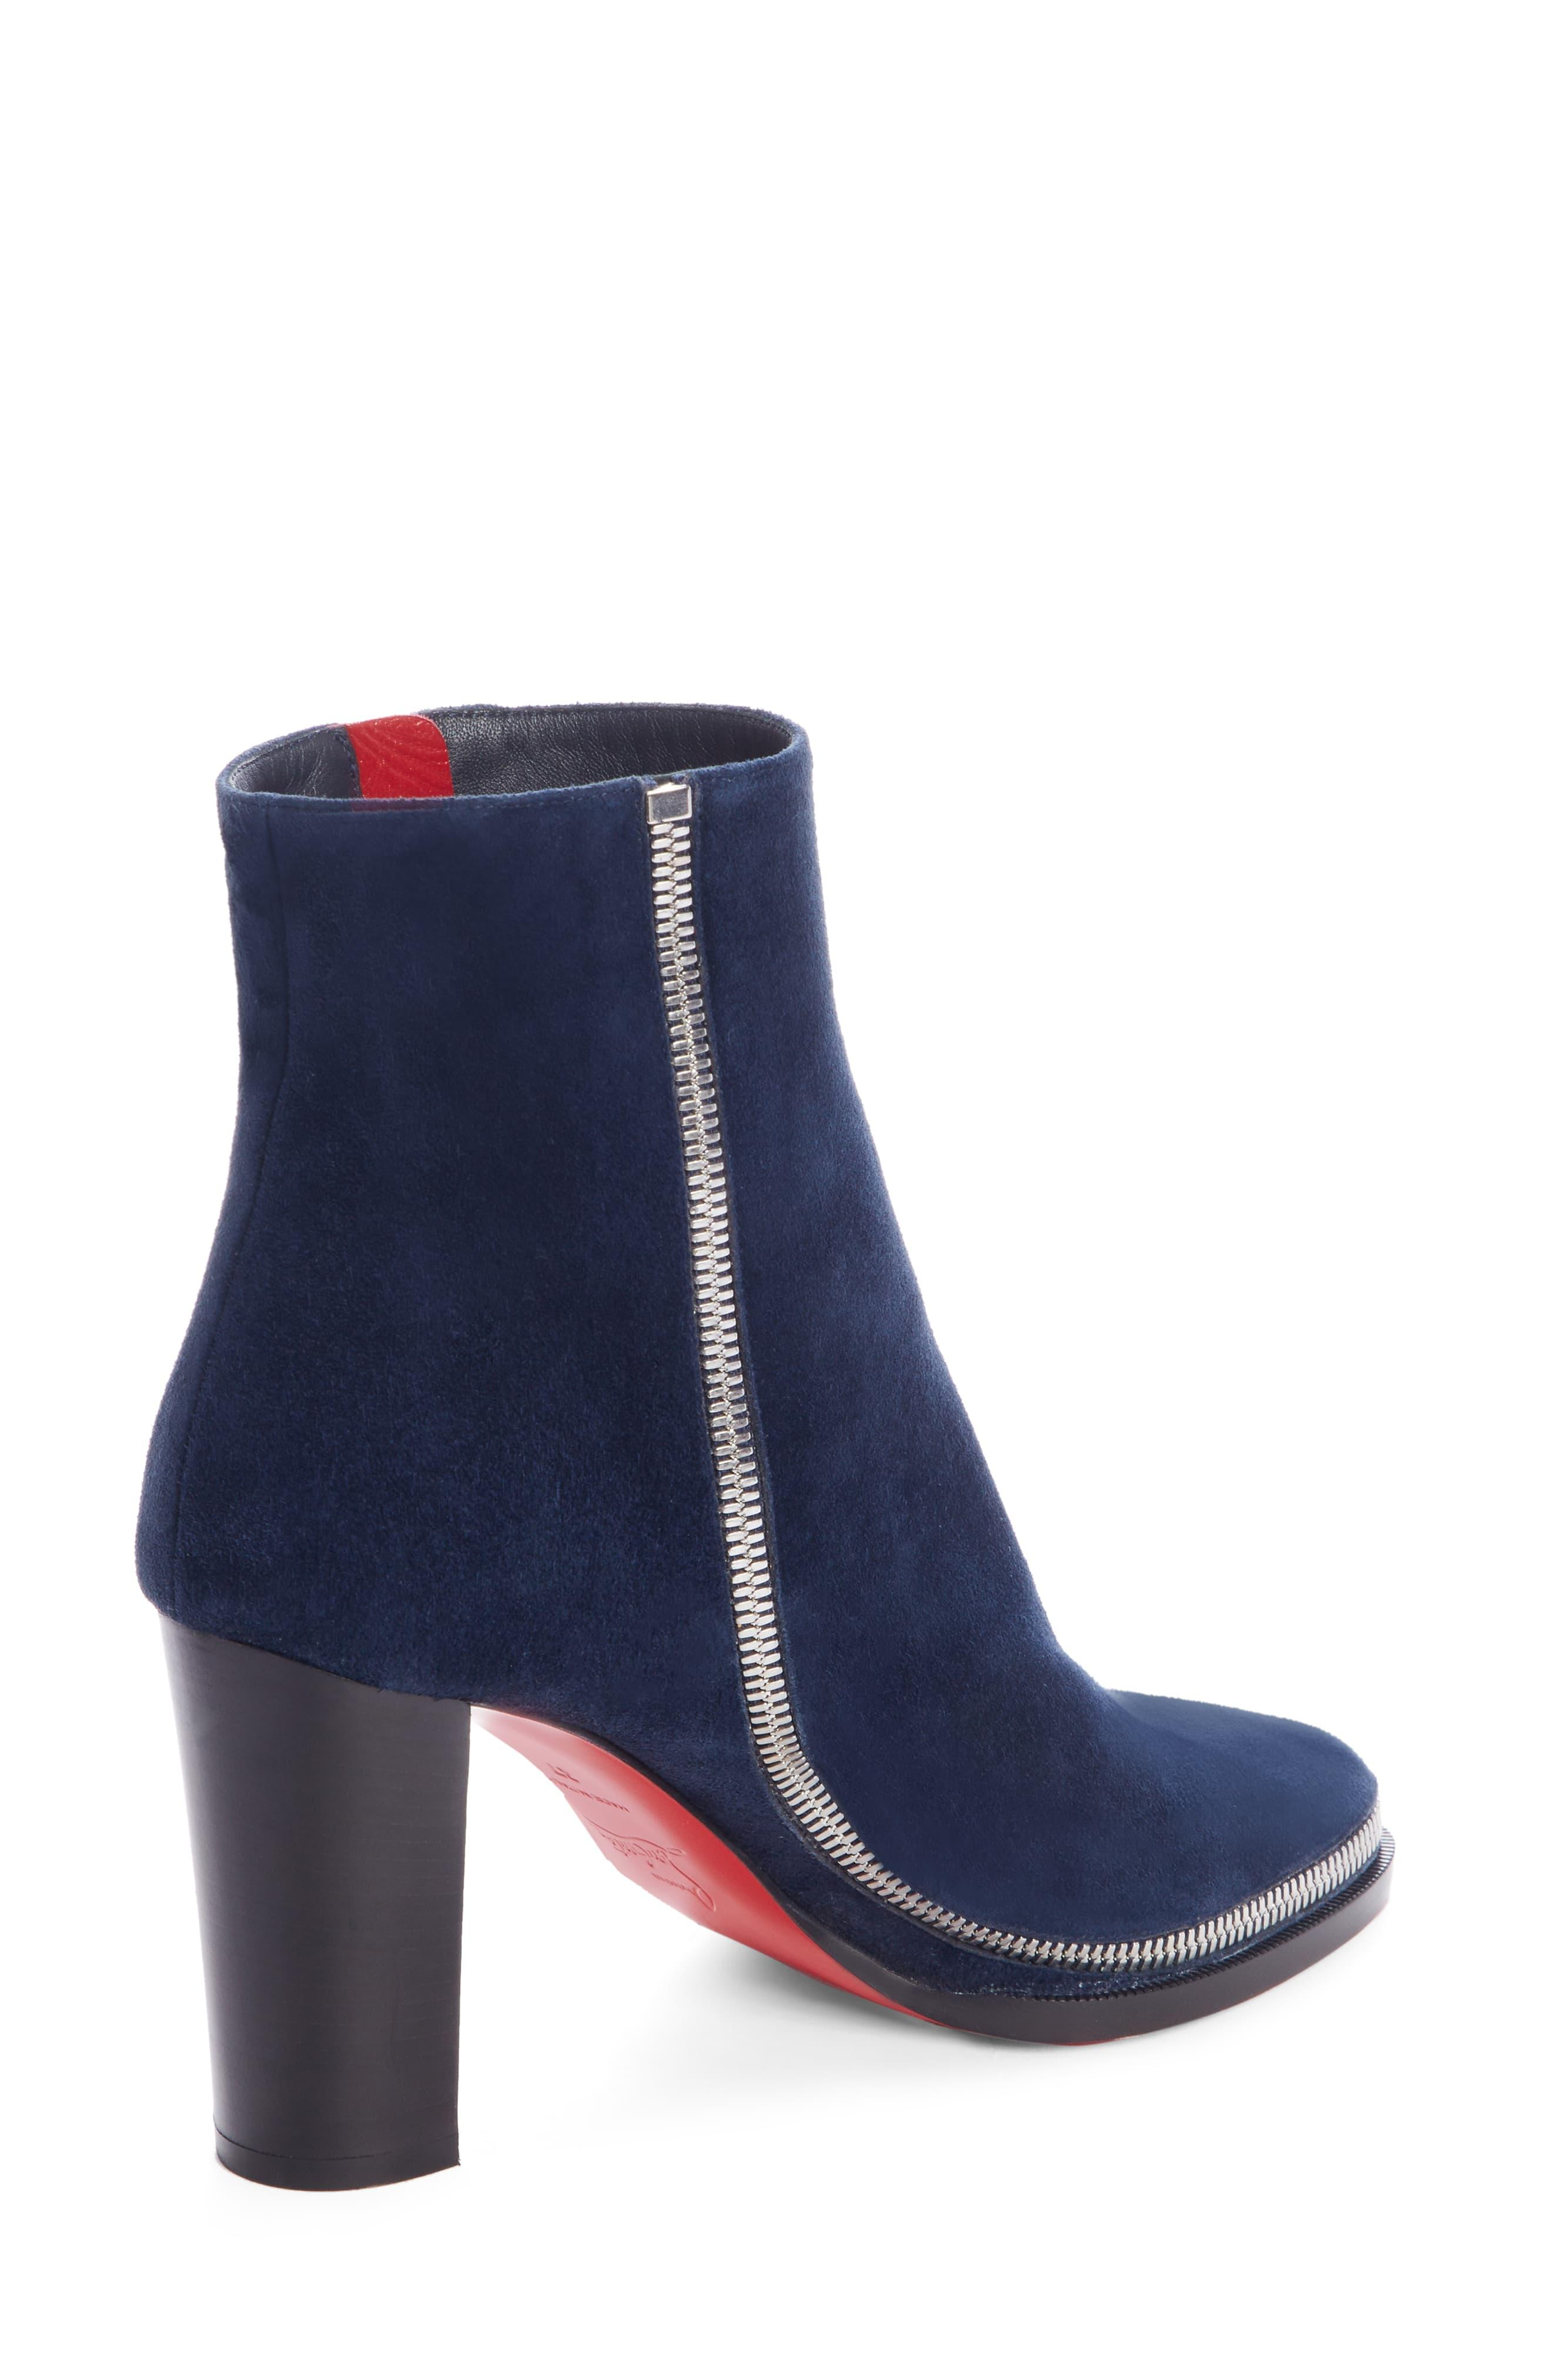 newest 482b1 70cac Christian Louboutin Blue Telezip Bootie